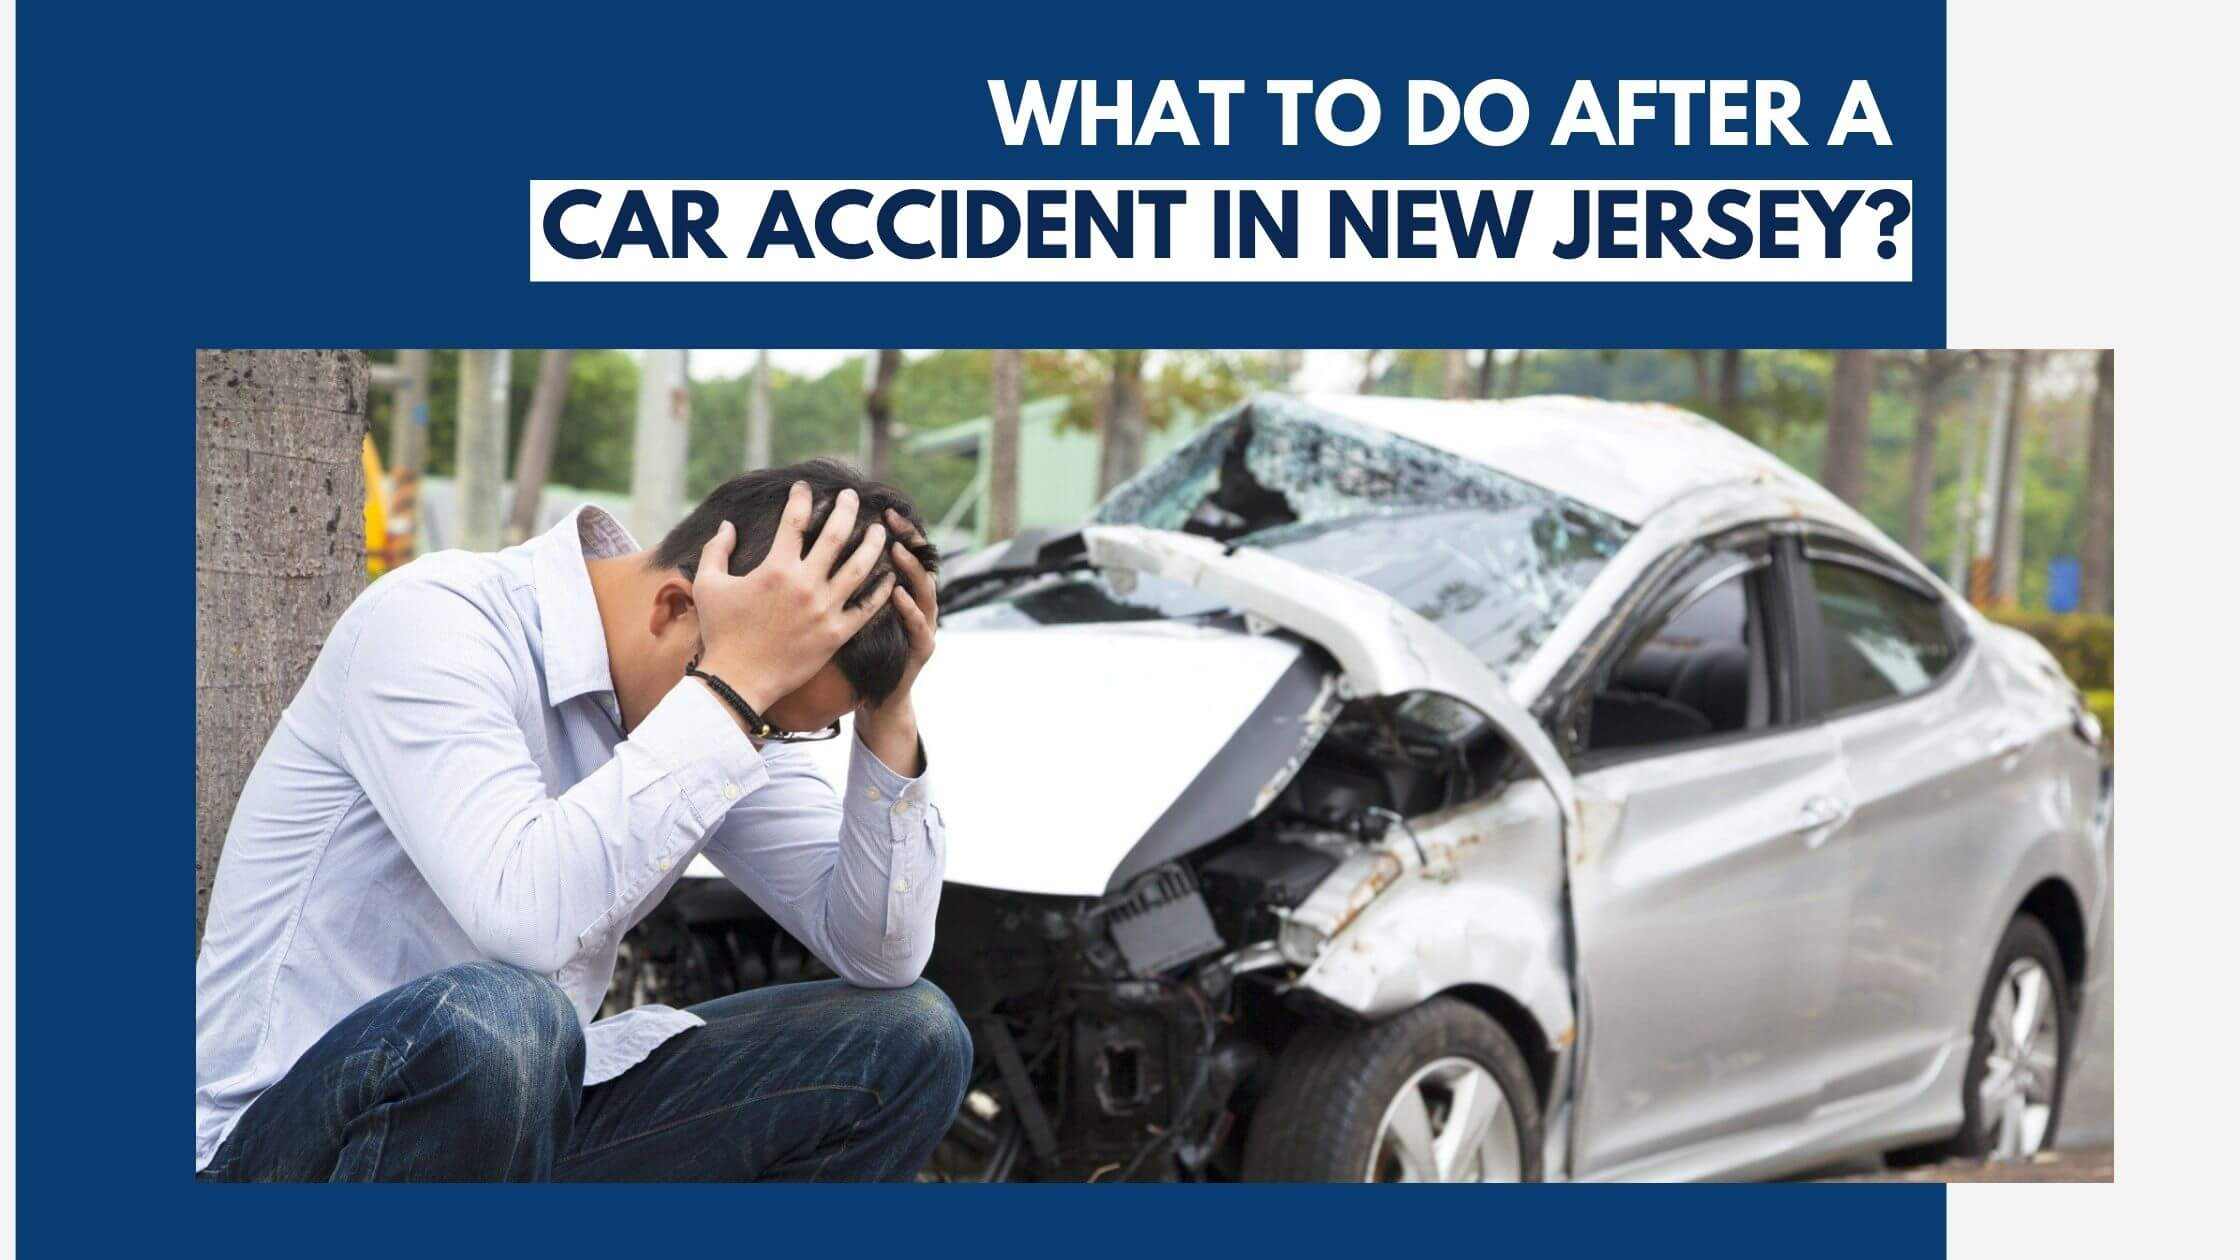 What to do after a car accident in New Jersey?